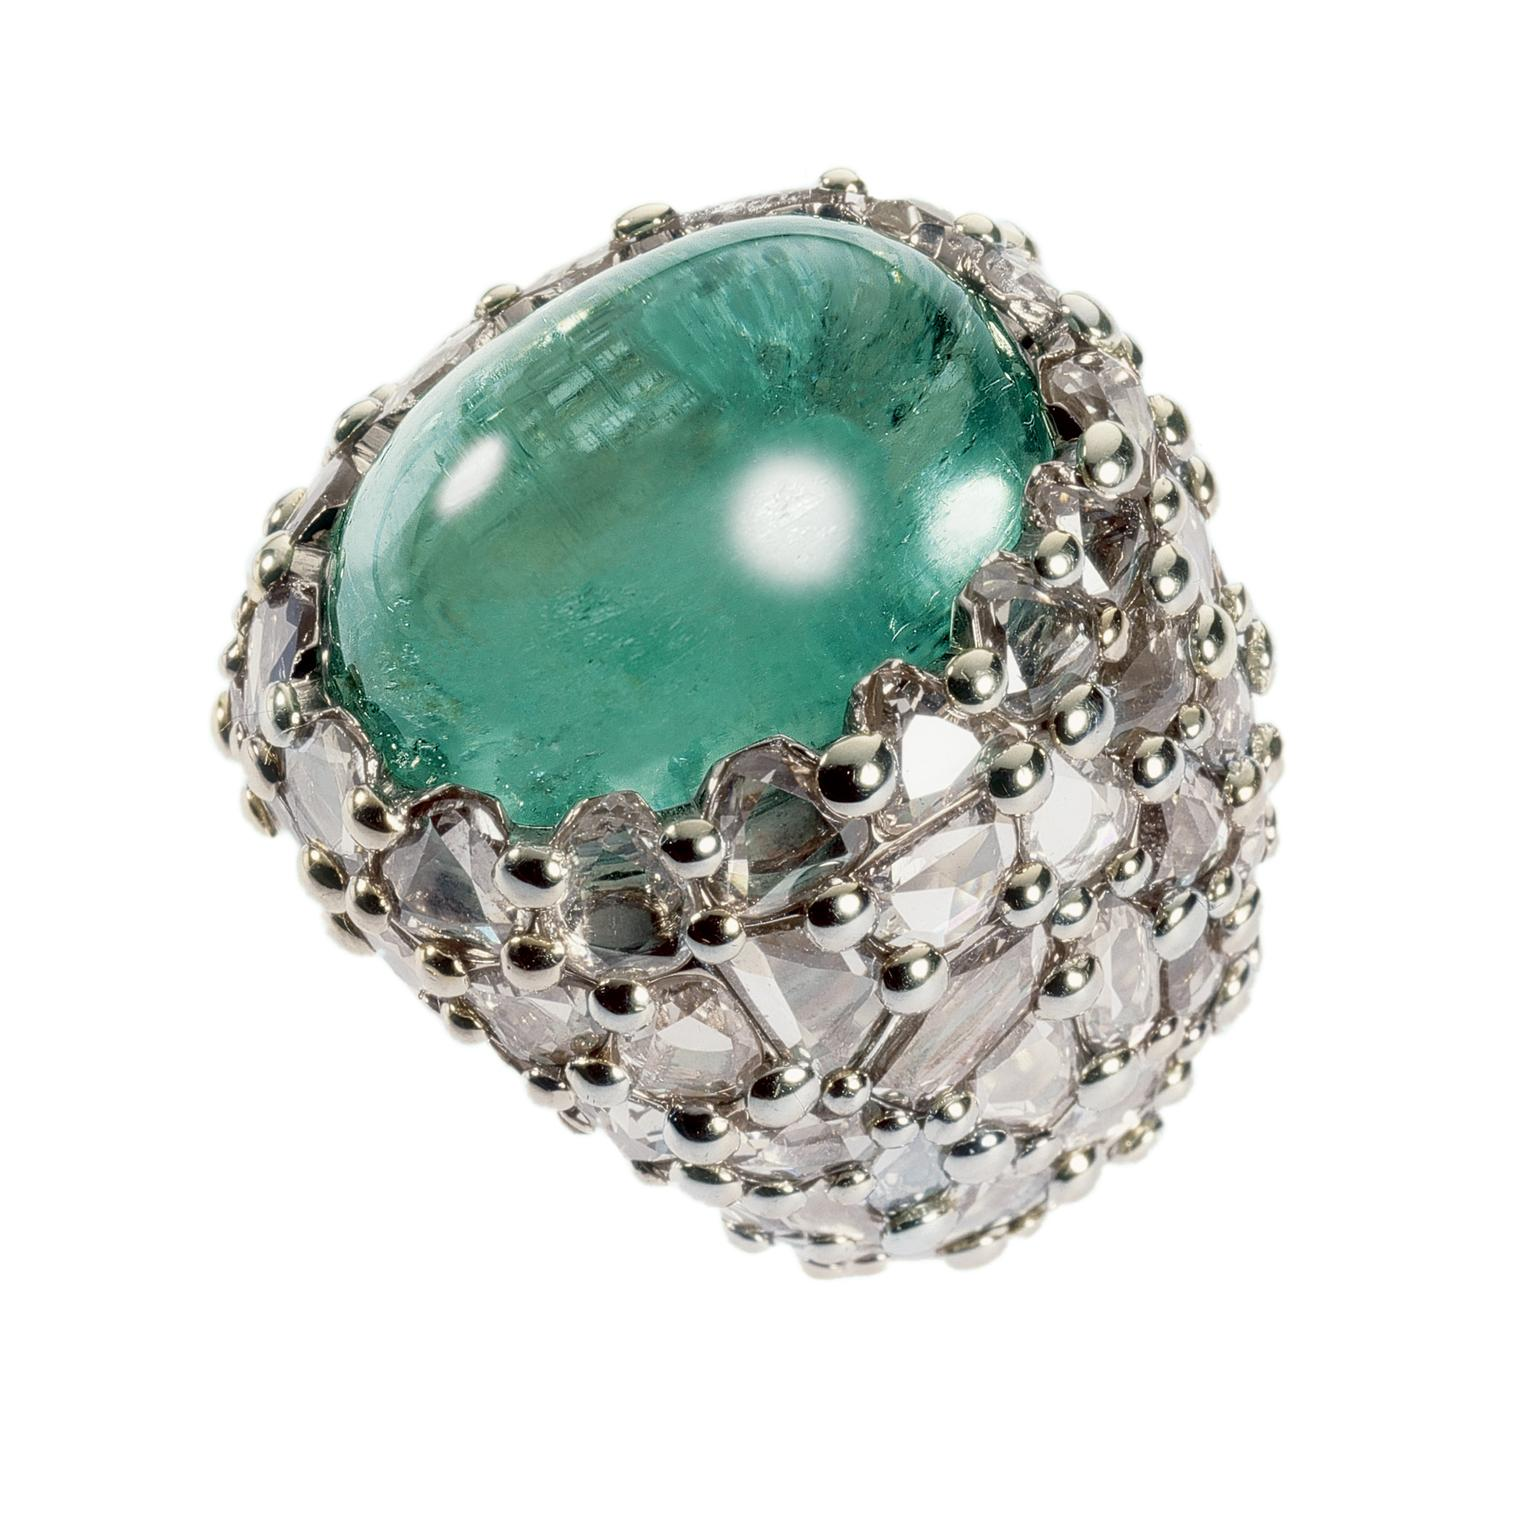 Pomellato Pom Pom London ring in white gold with beryl